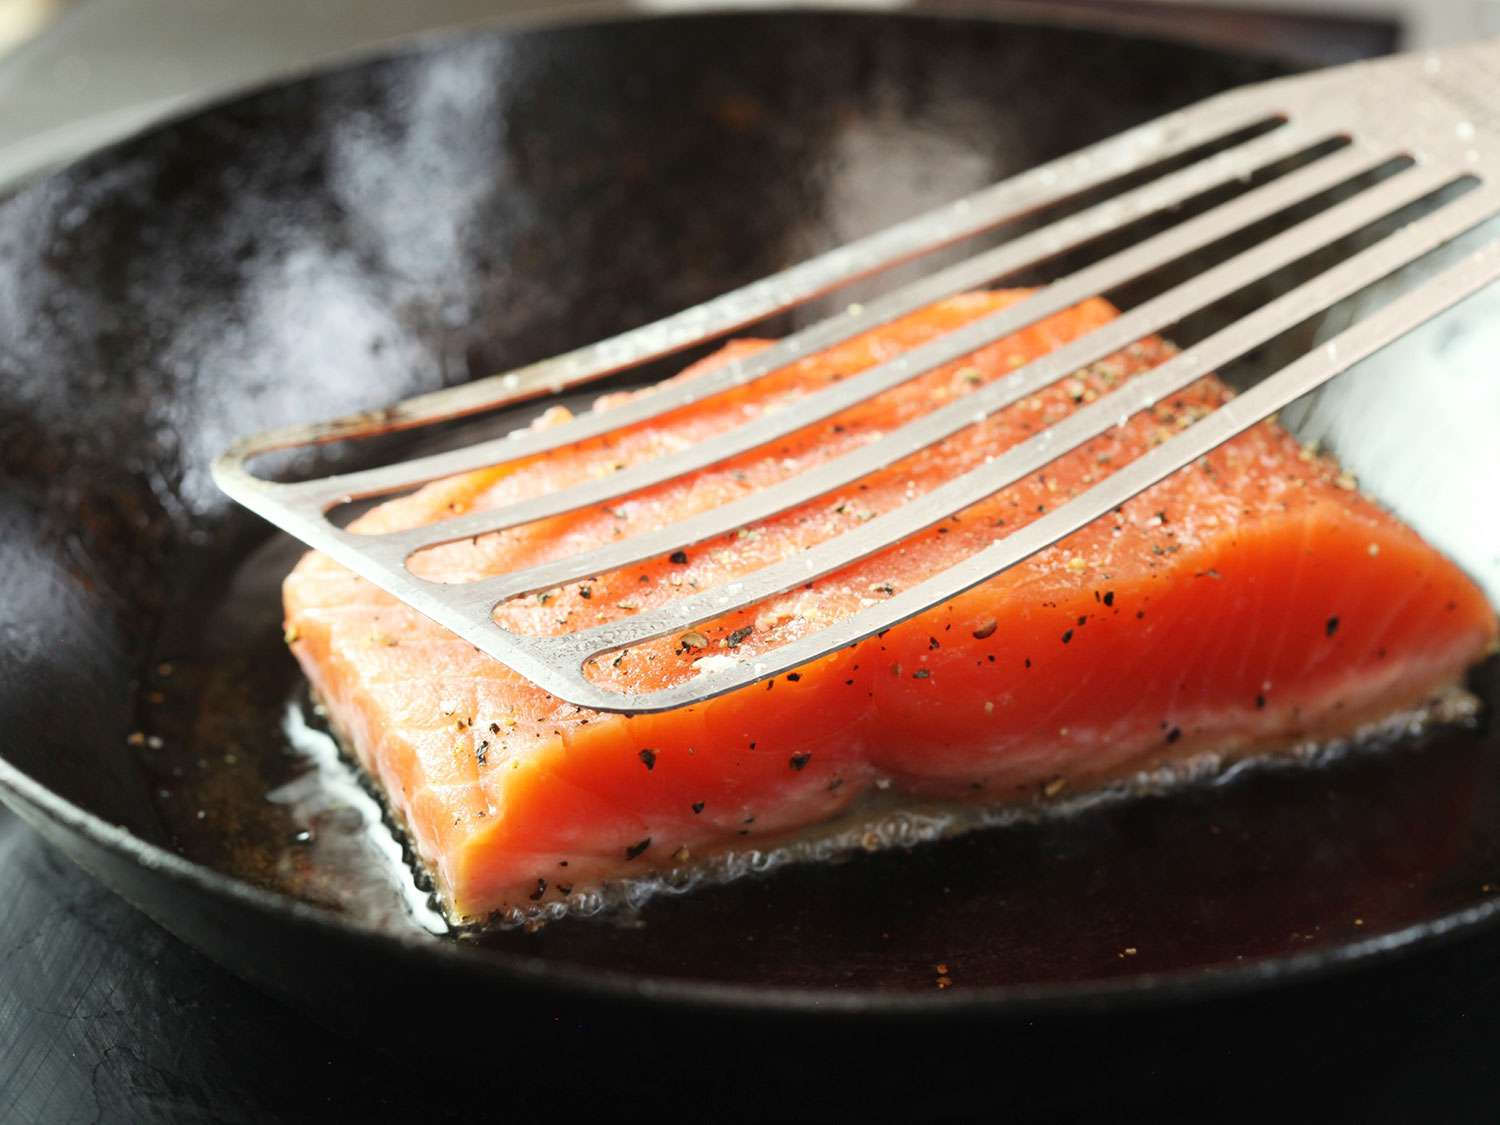 Using a fish spatula to press on flesh side of skin-on salmon fillet searing in vegetable oil in a hot carbon steel skillet.